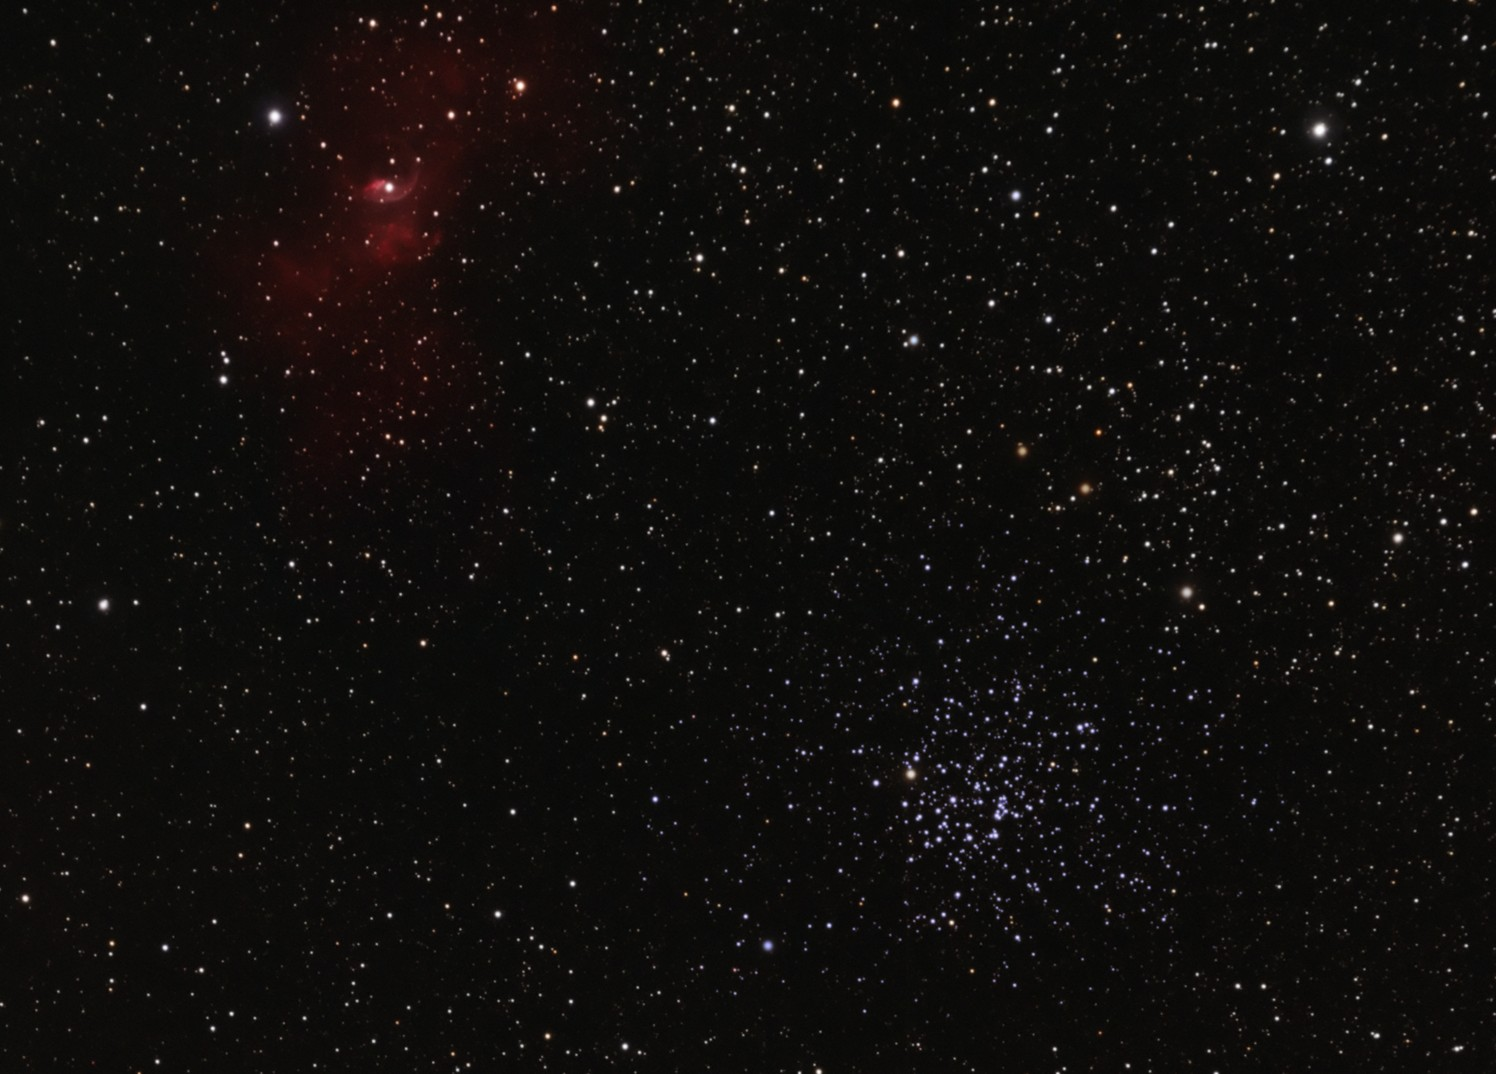 The Bubble Nebula and M52 star cluster